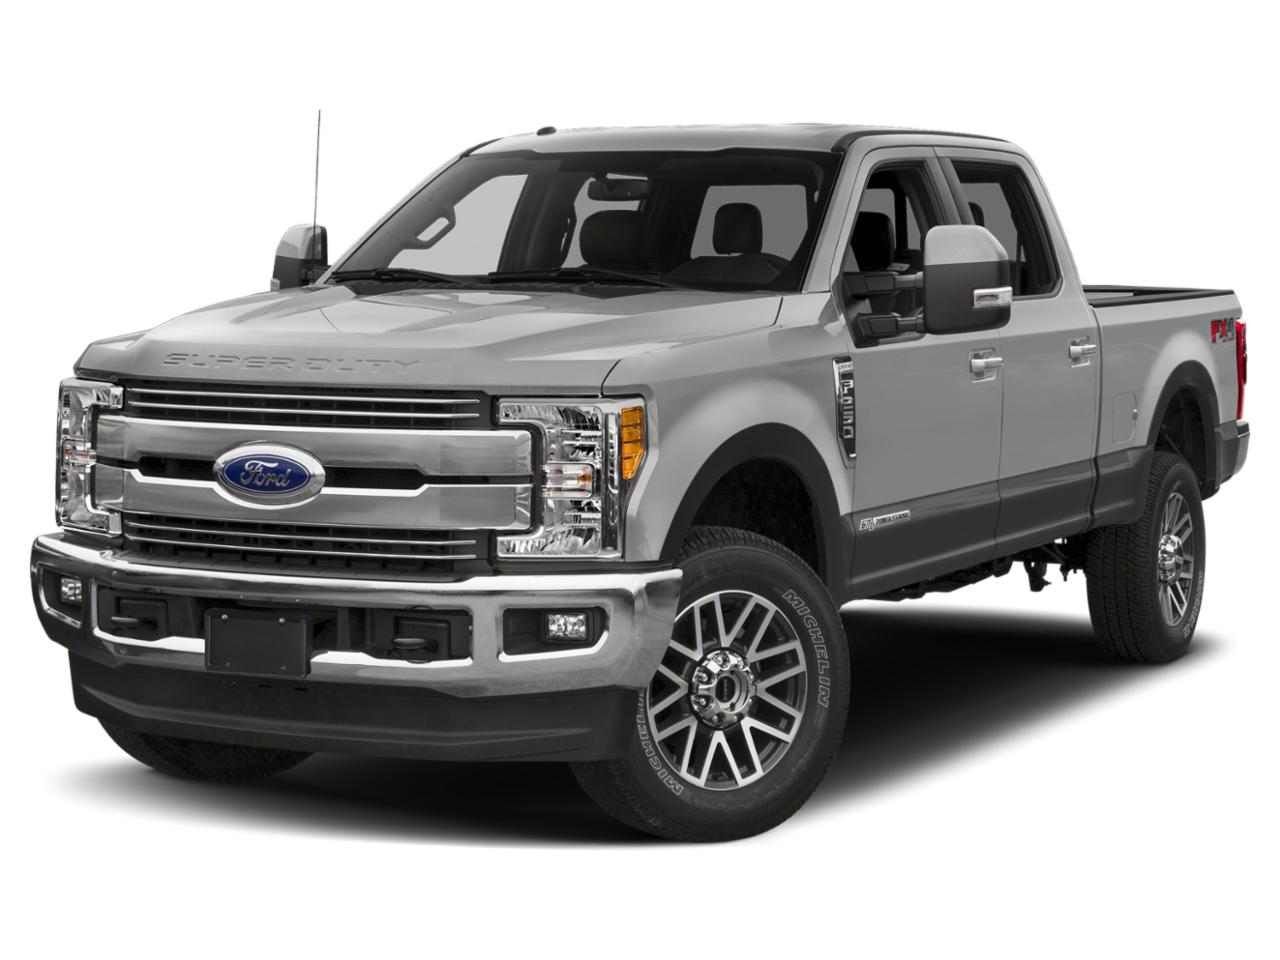 2019 Ford Super Duty F-250 SRW Vehicle Photo in Colorado Springs, CO 80920